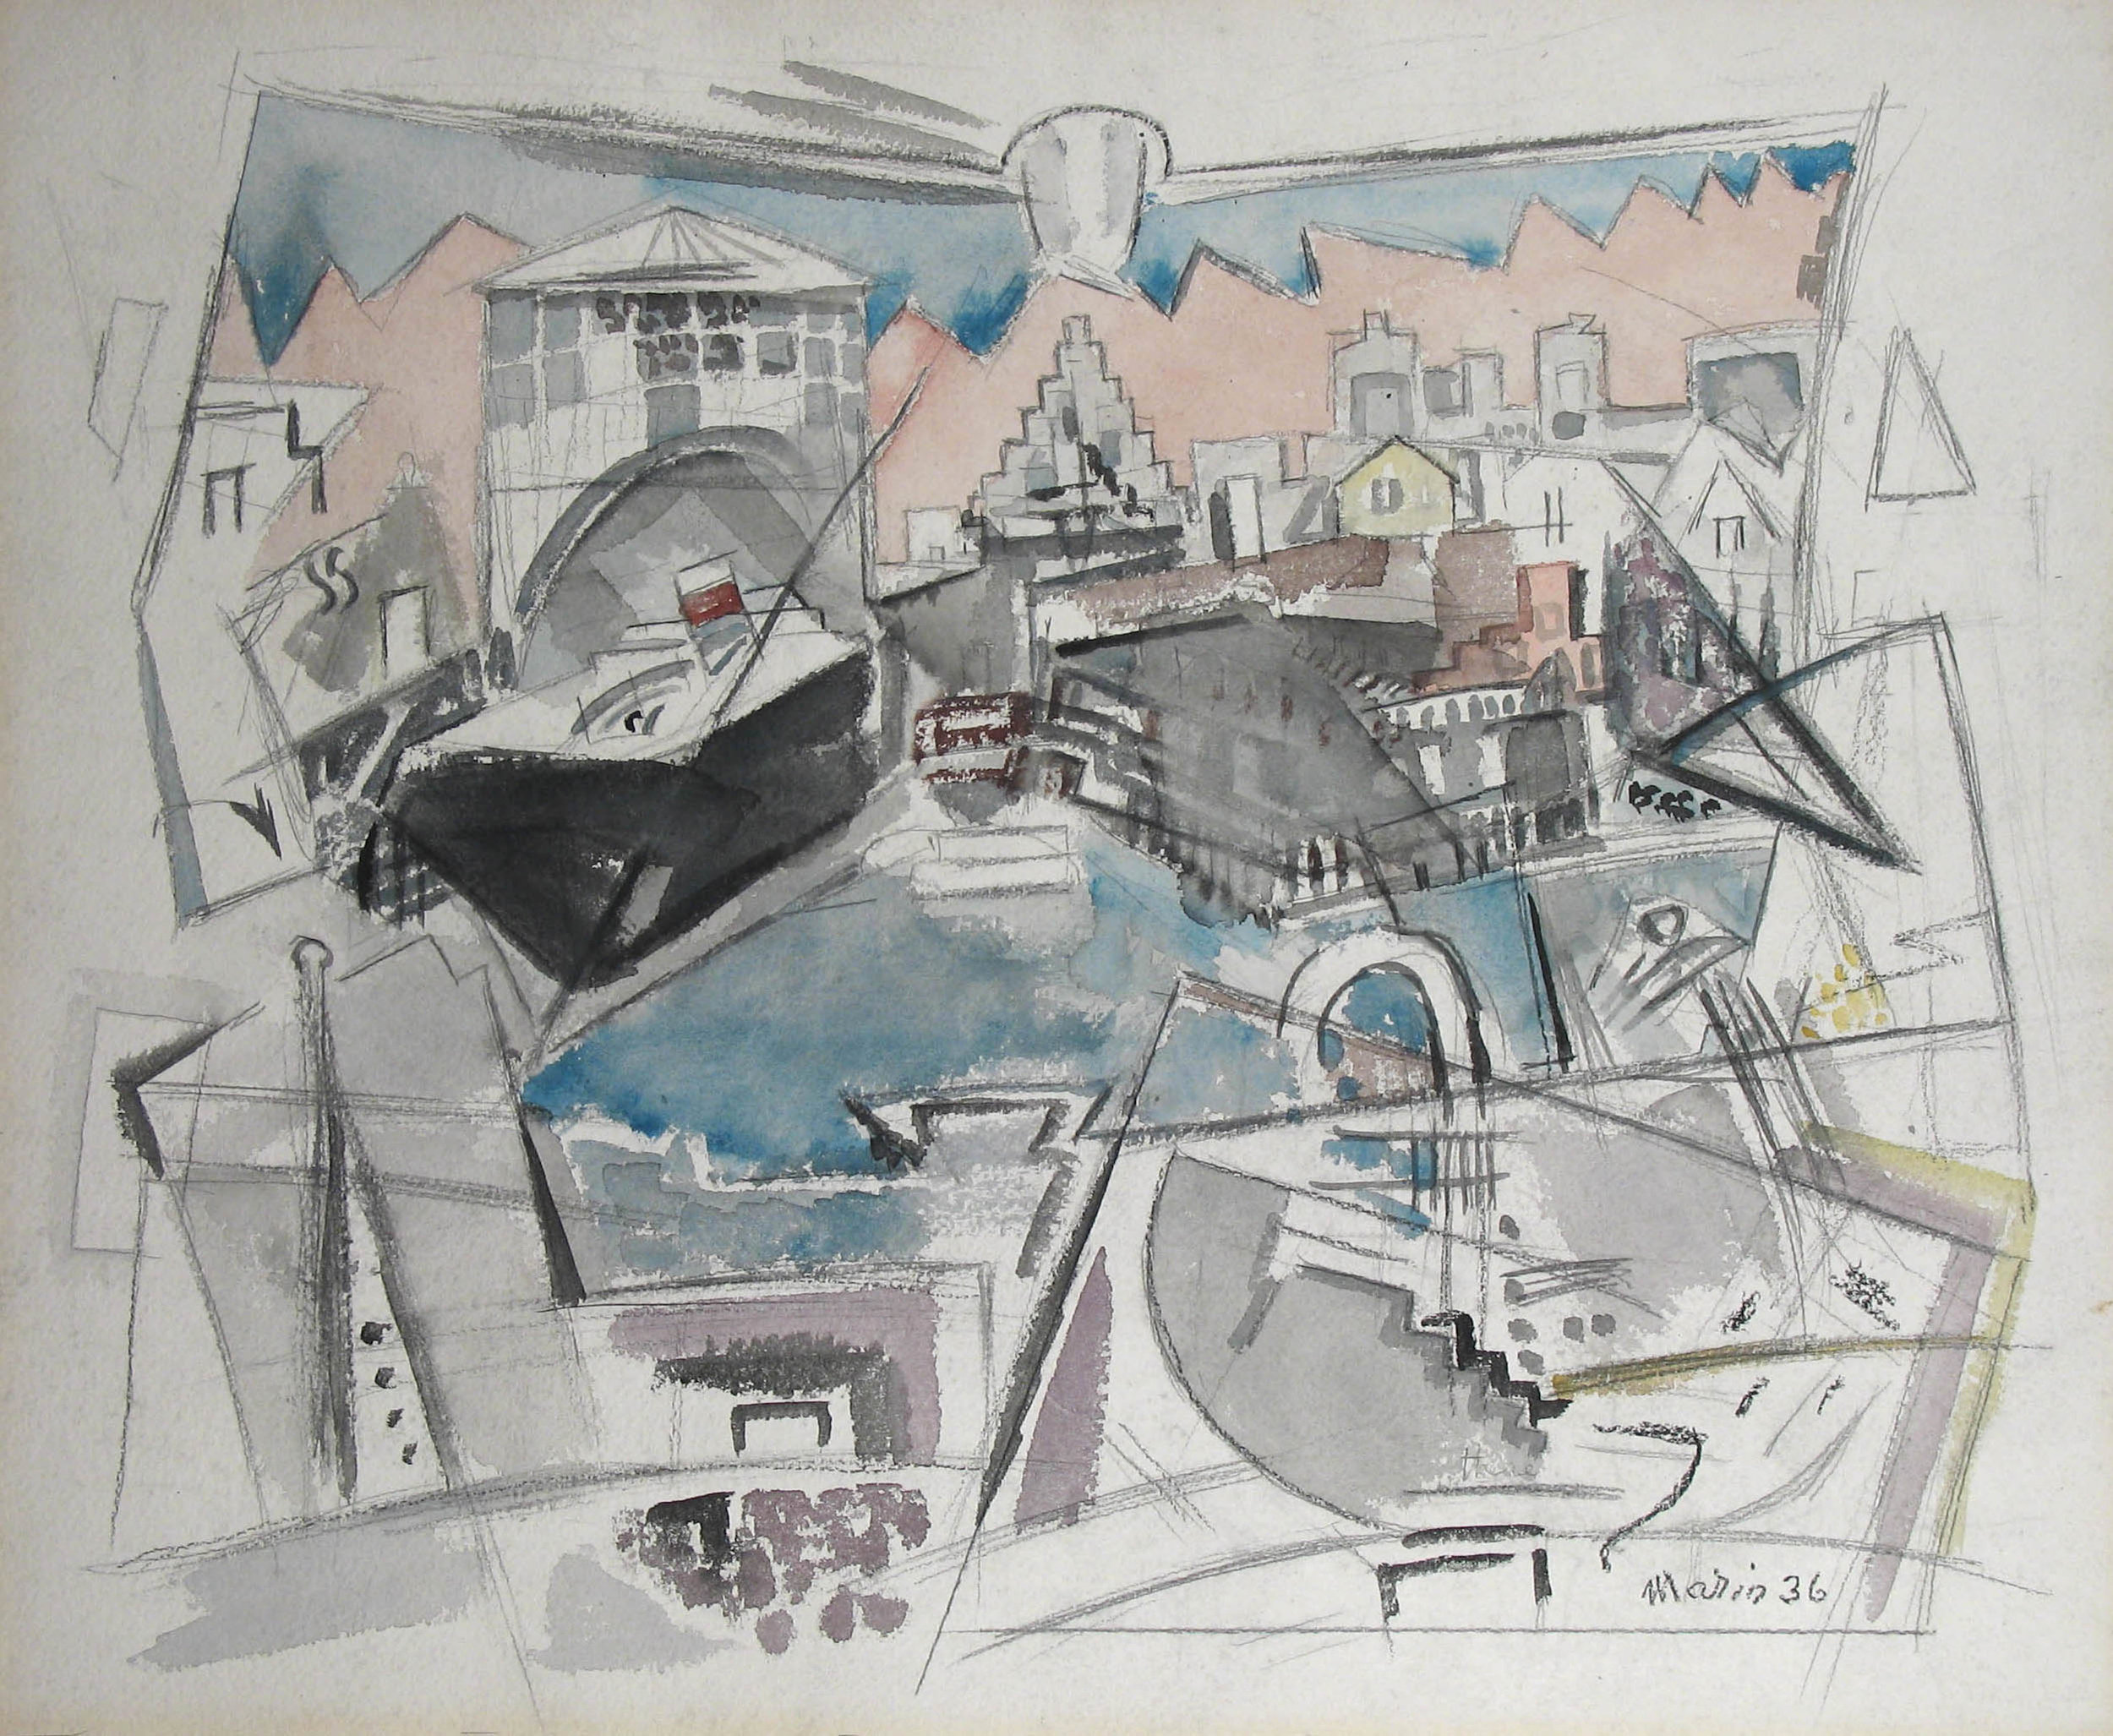 Abstract watercolor in blue, grey, and pink of Manhattan waterfront with buildings and ship